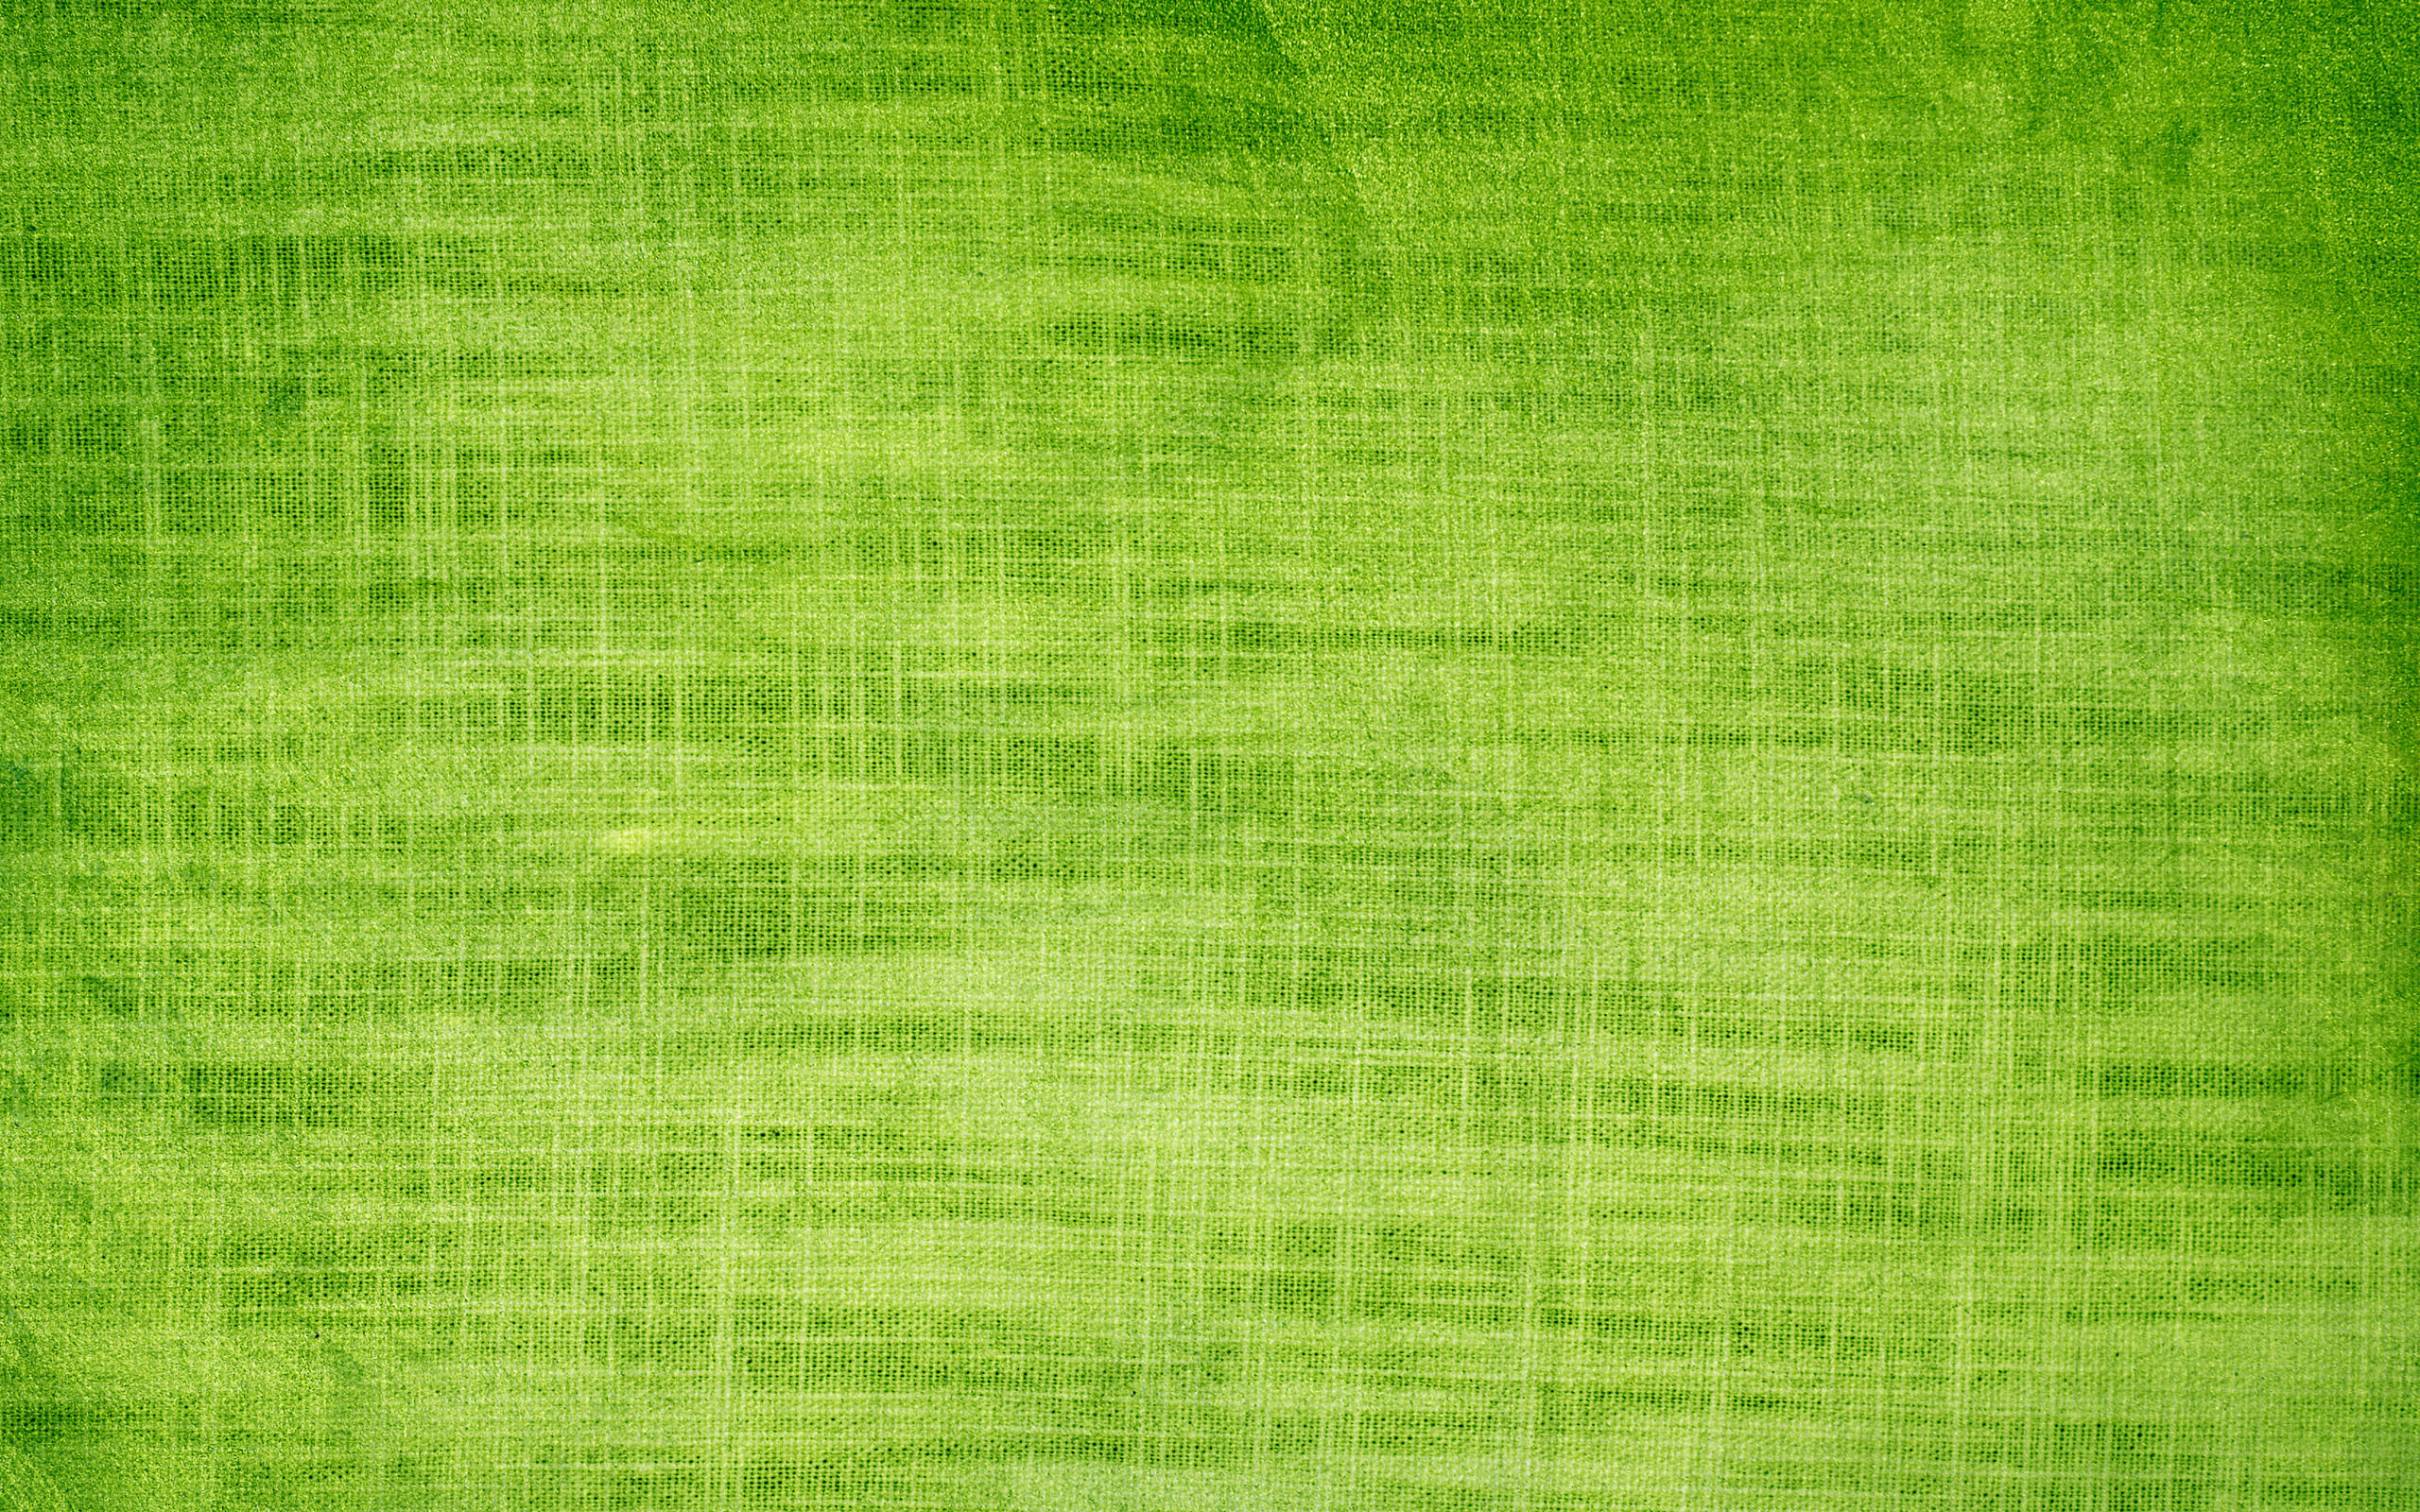 green textures wallpapers